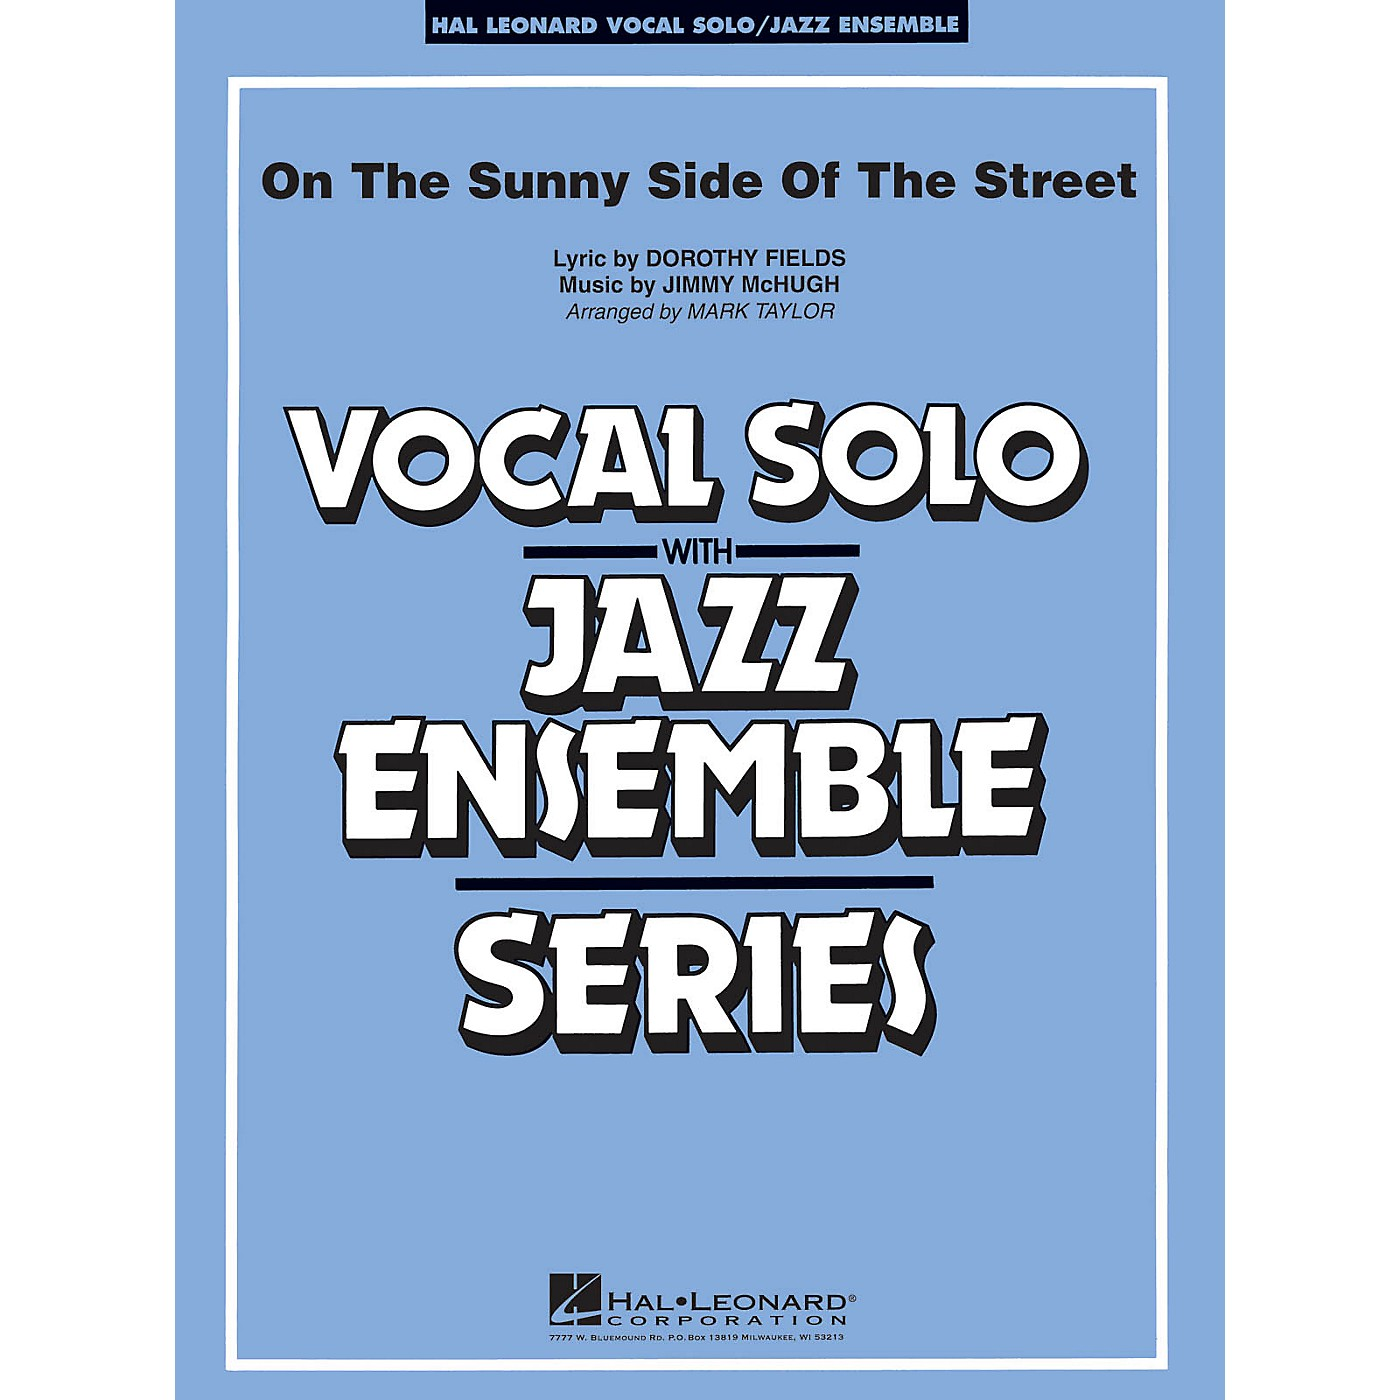 Hal Leonard On the Sunny Side of the Street (Key: Ab) Jazz Band Level 3-4 Composed by McHugh and Fields thumbnail